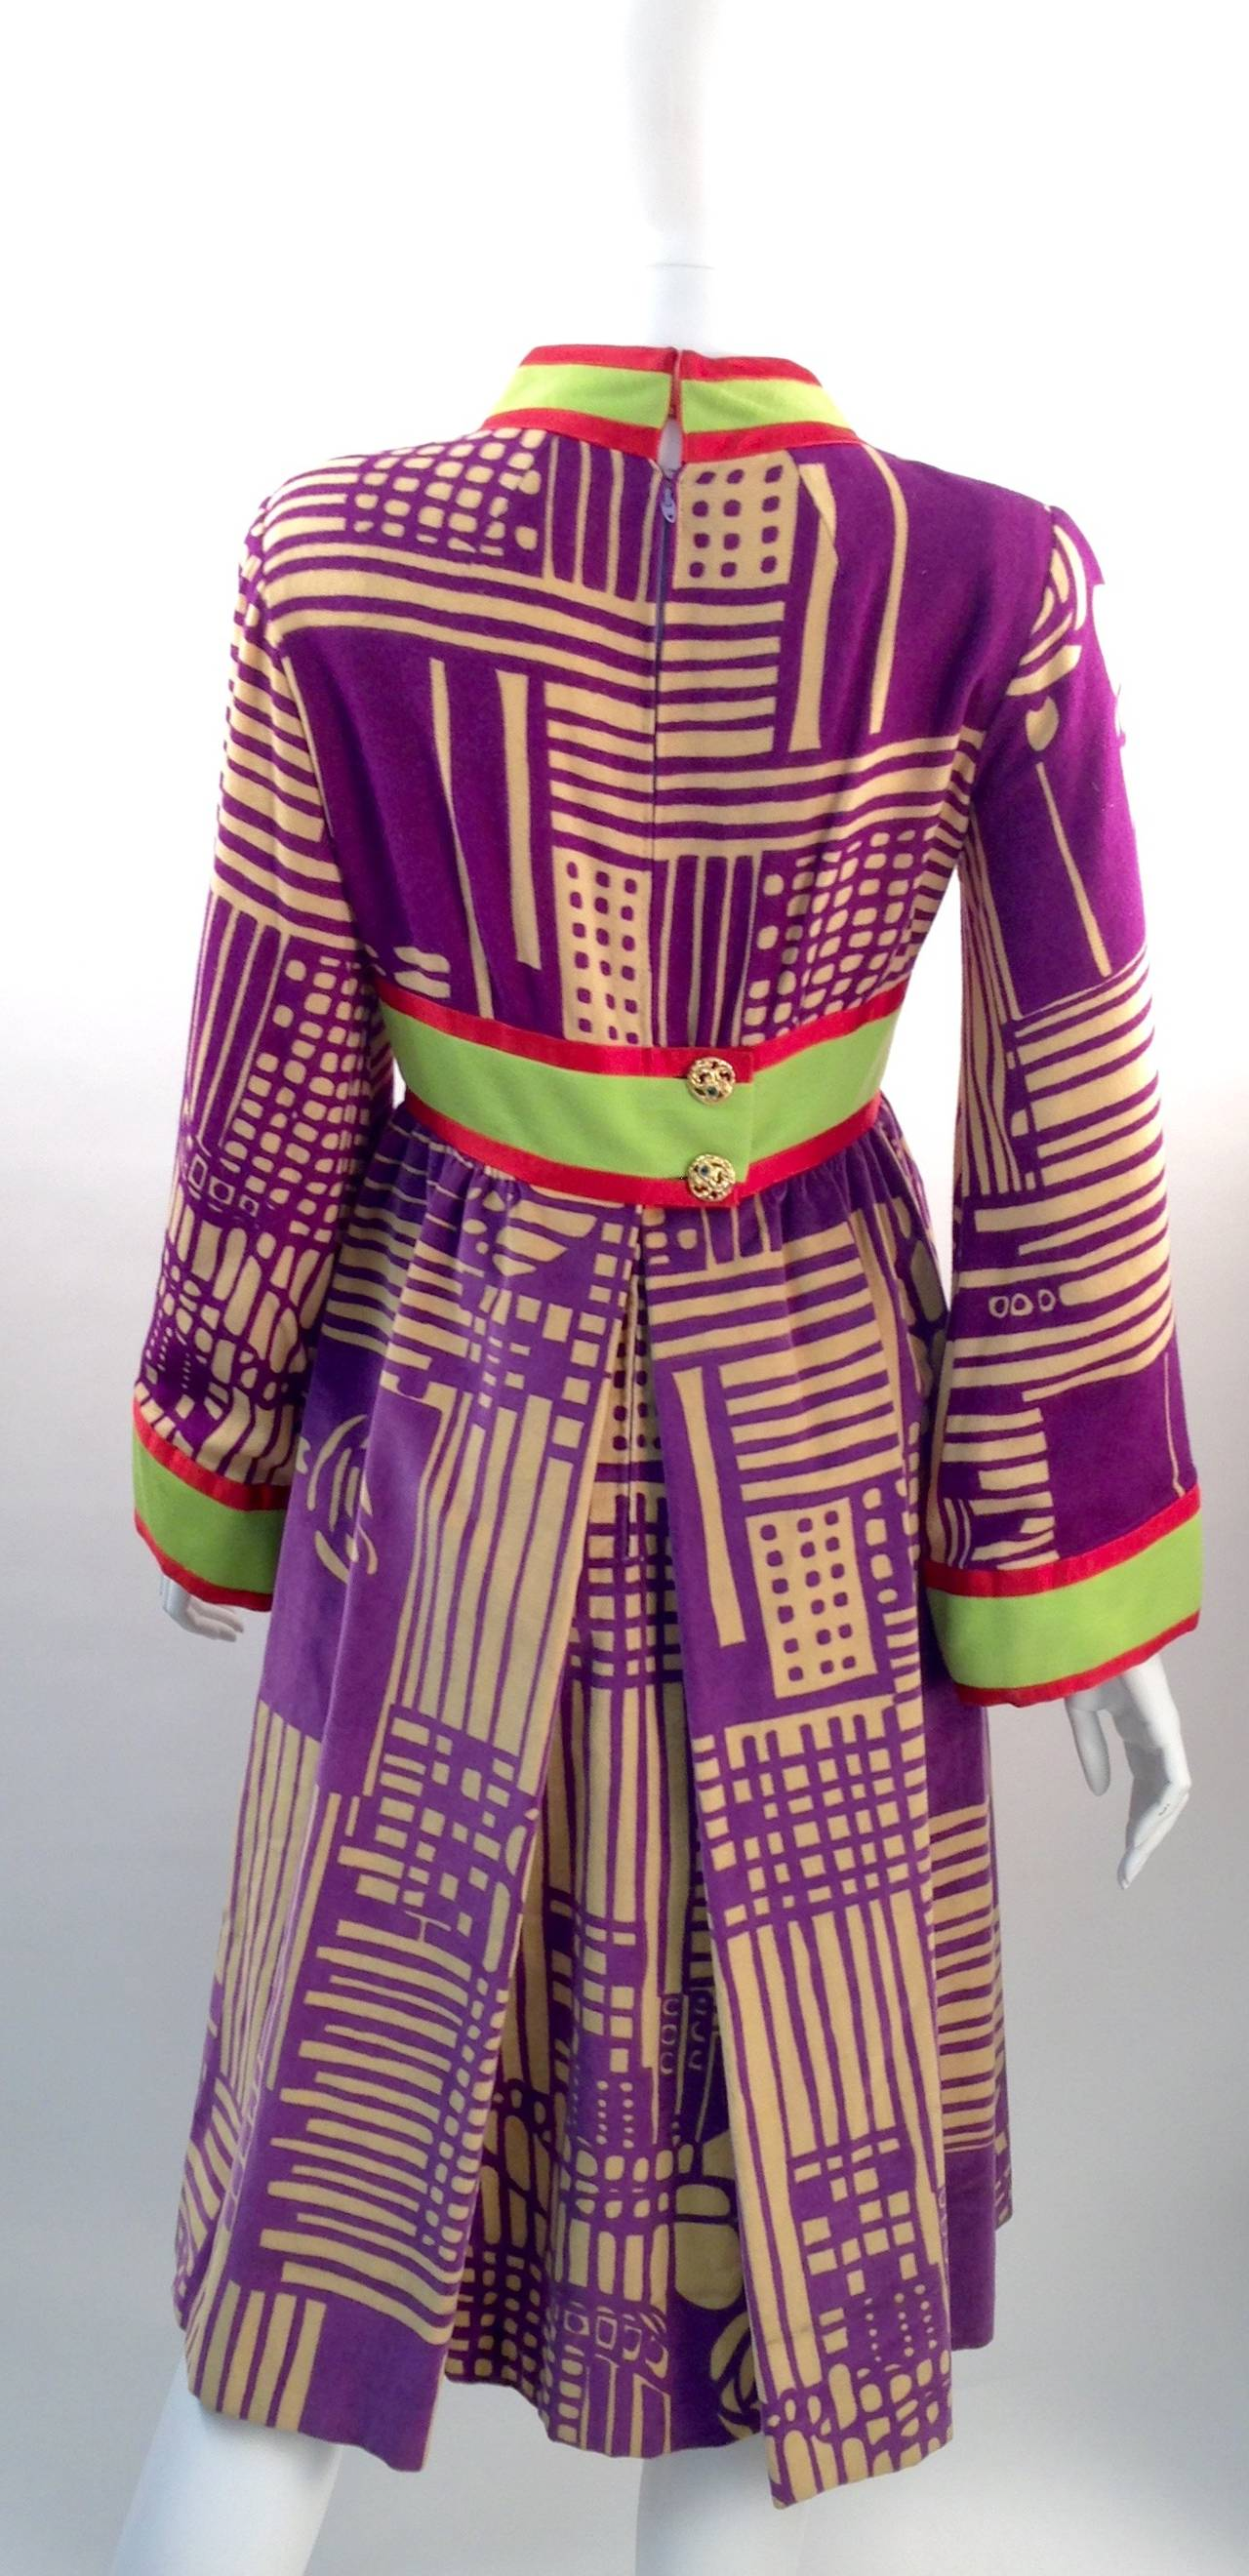 What a piece of work!  This dress has an fantastic mix of matching printed fabrics and colors! The bodice is a printed wool blend with purple abstract geometric shapes and flower patterns on a simple